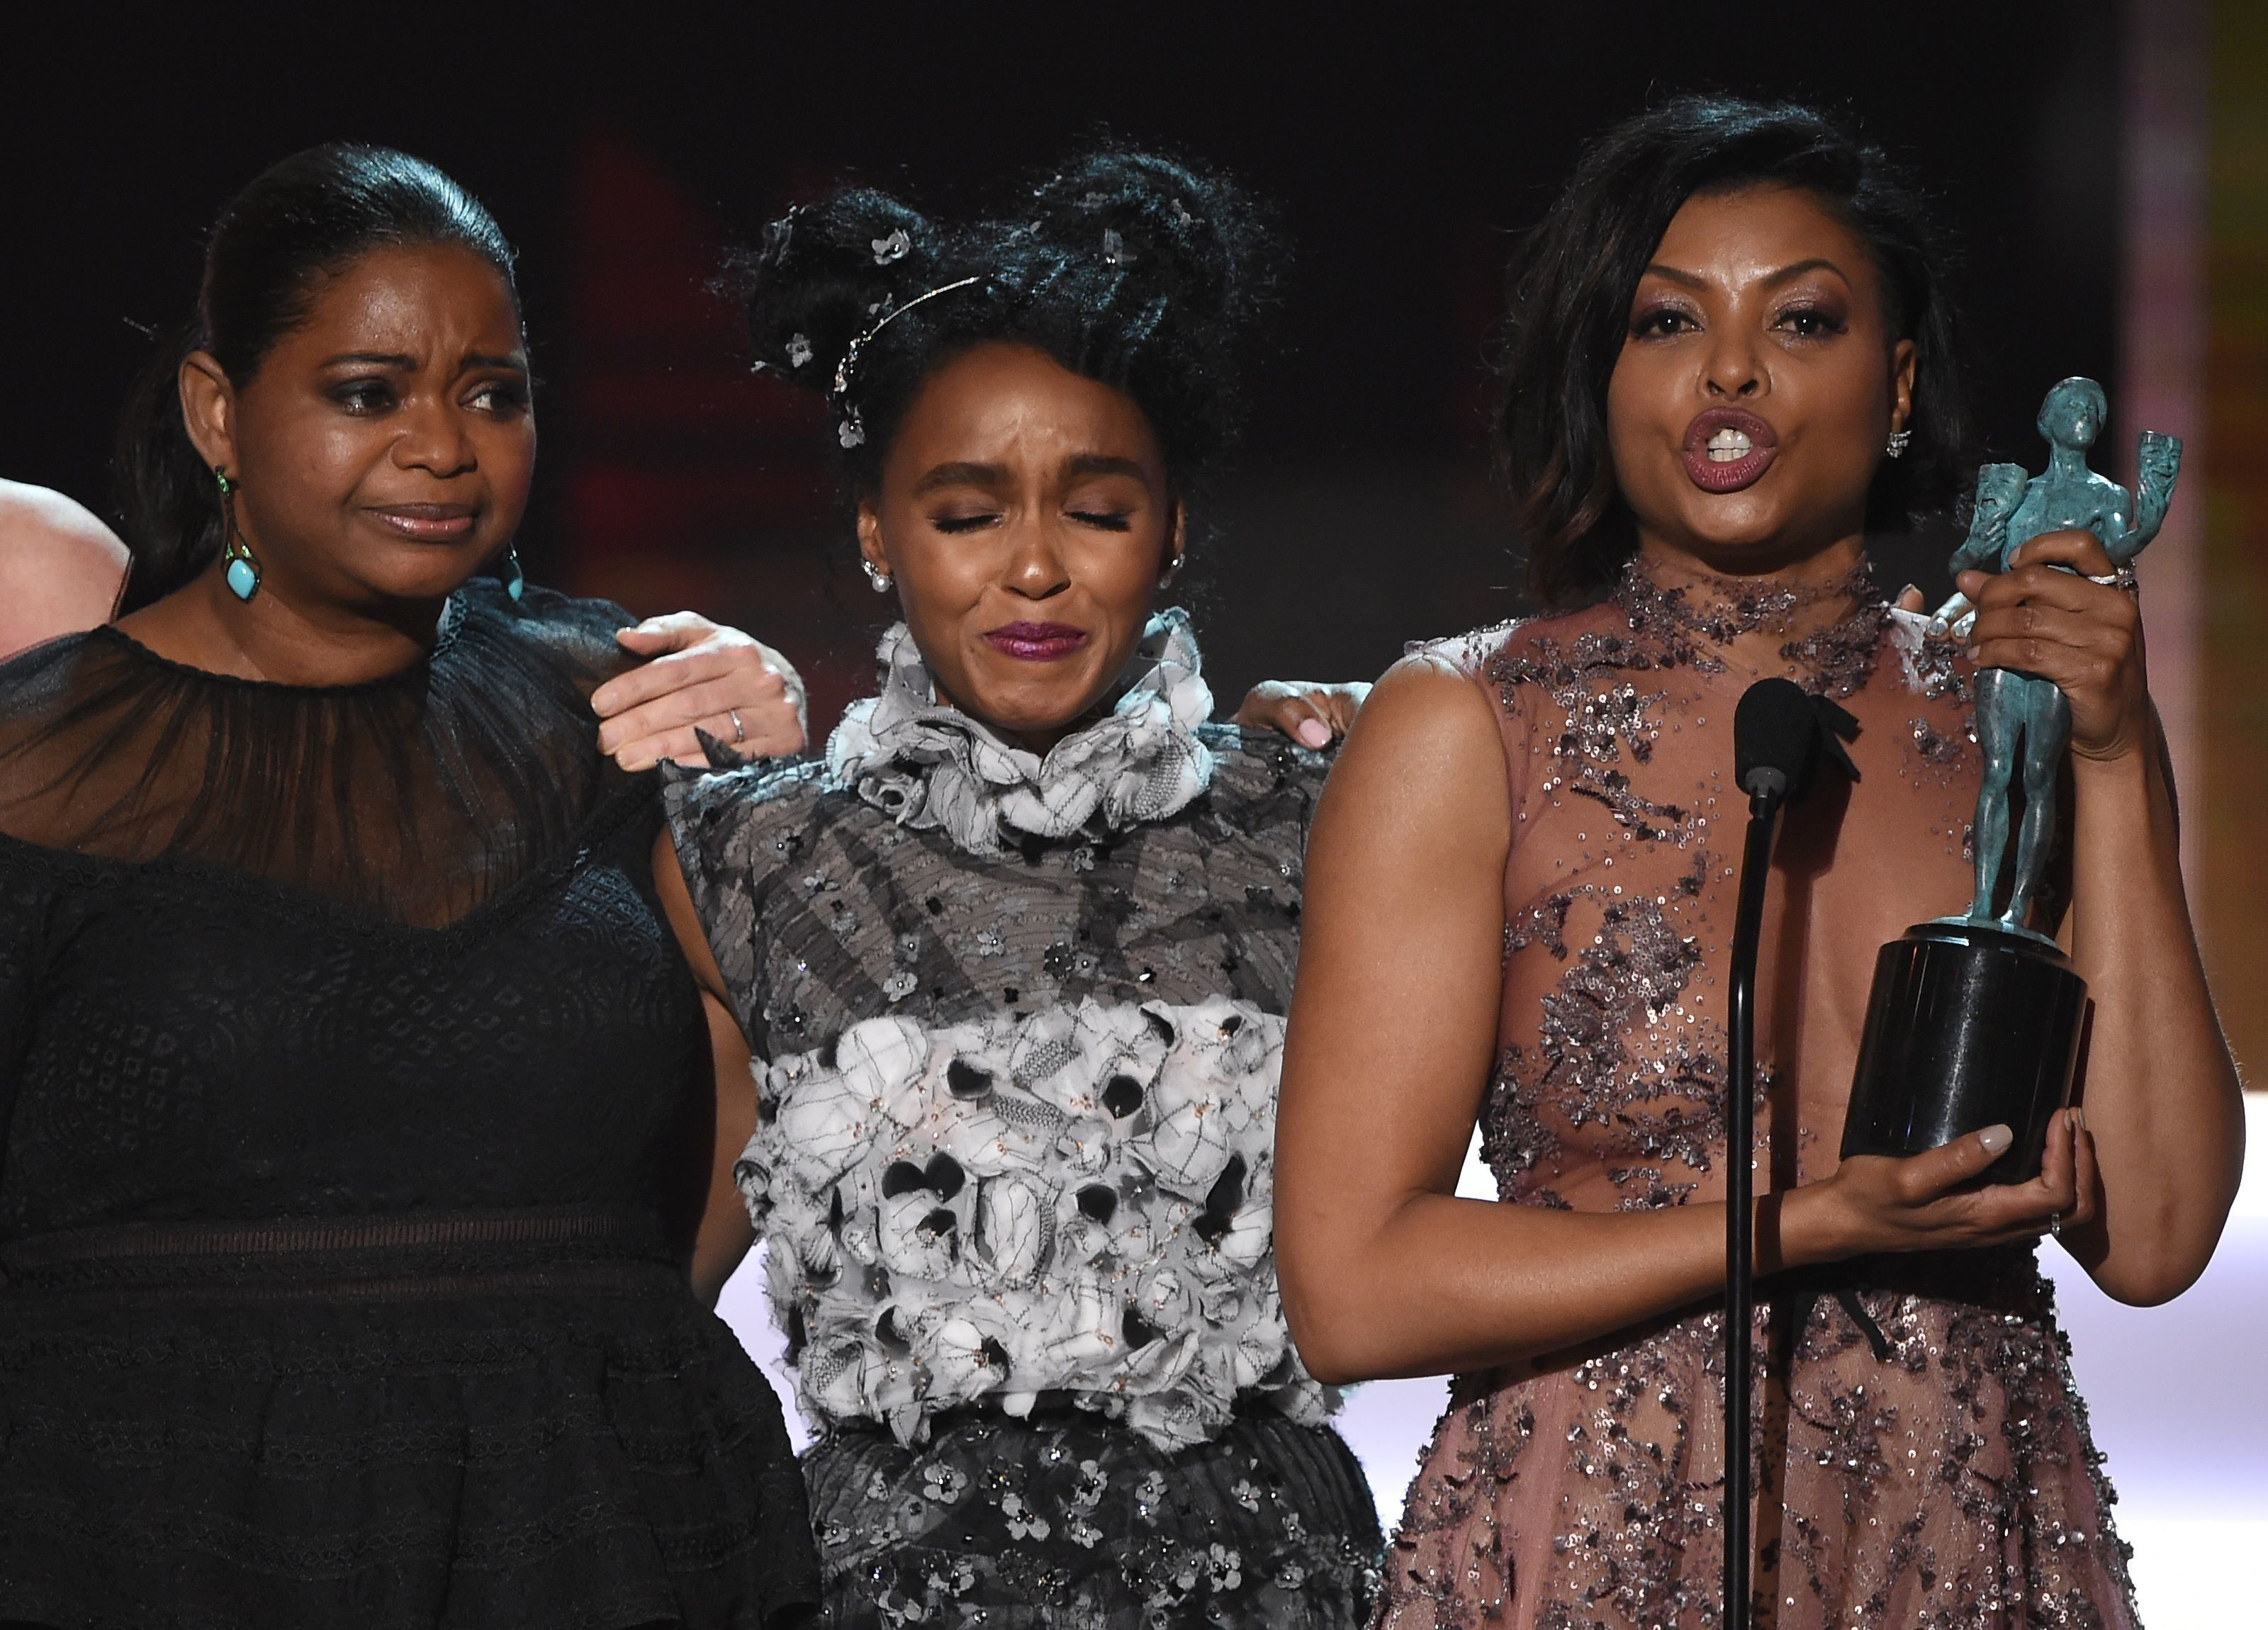 (L-R) Actress Octavia Spencer,  Janelle Monae, and Taraji P. Henson accept the award for Outstanding Performance by a Cast in a Motion Picture for 'Hidden Figures' during the 23rd Annual Screen Actors Guild Awards show at The Shrine Auditorium on January 29, 2017 in Los Angeles, California. / AFP / Robyn BECK        (Photo credit should read ROBYN BECK/AFP/Getty Images)